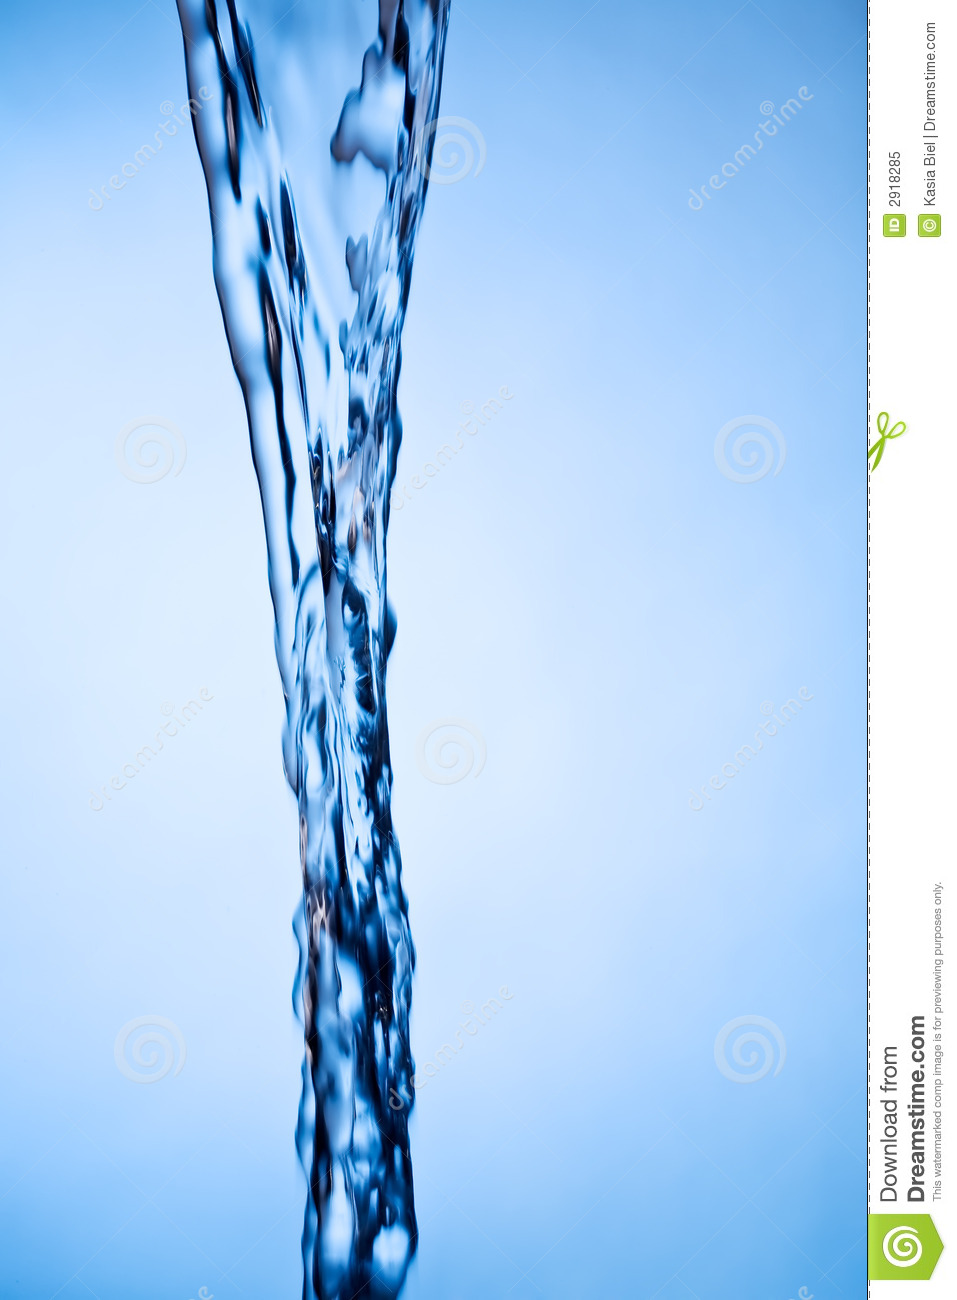 Water flow stock image. Image of flowing, freshness, close ...